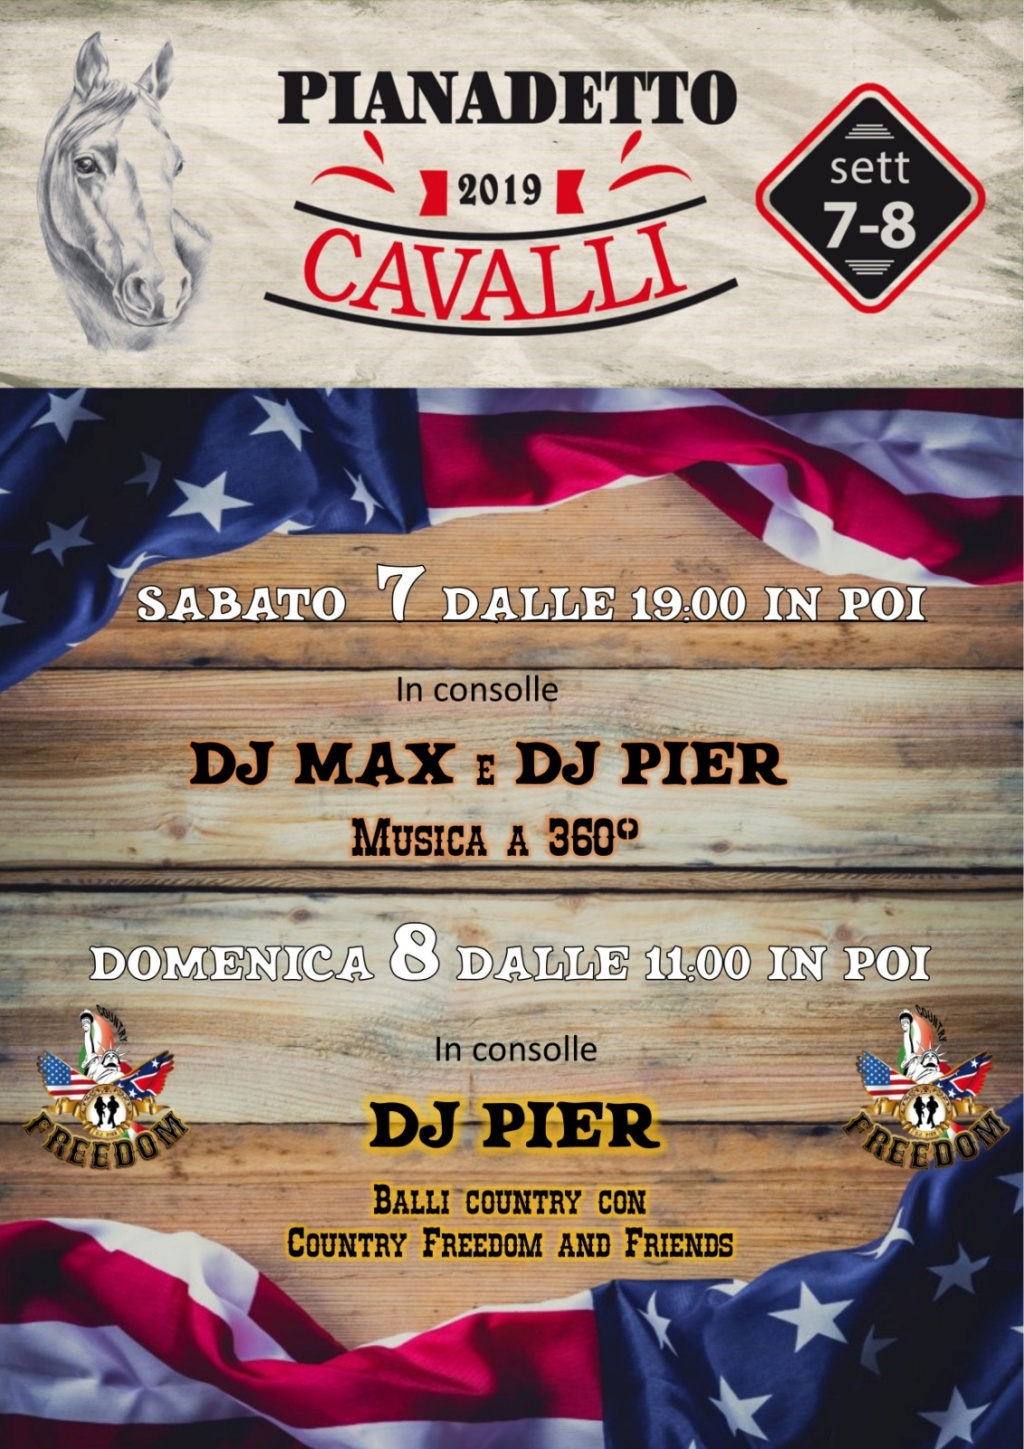 FESTA DEI CAVALLI 2019 @ Pianadetto (PR) Photo-11